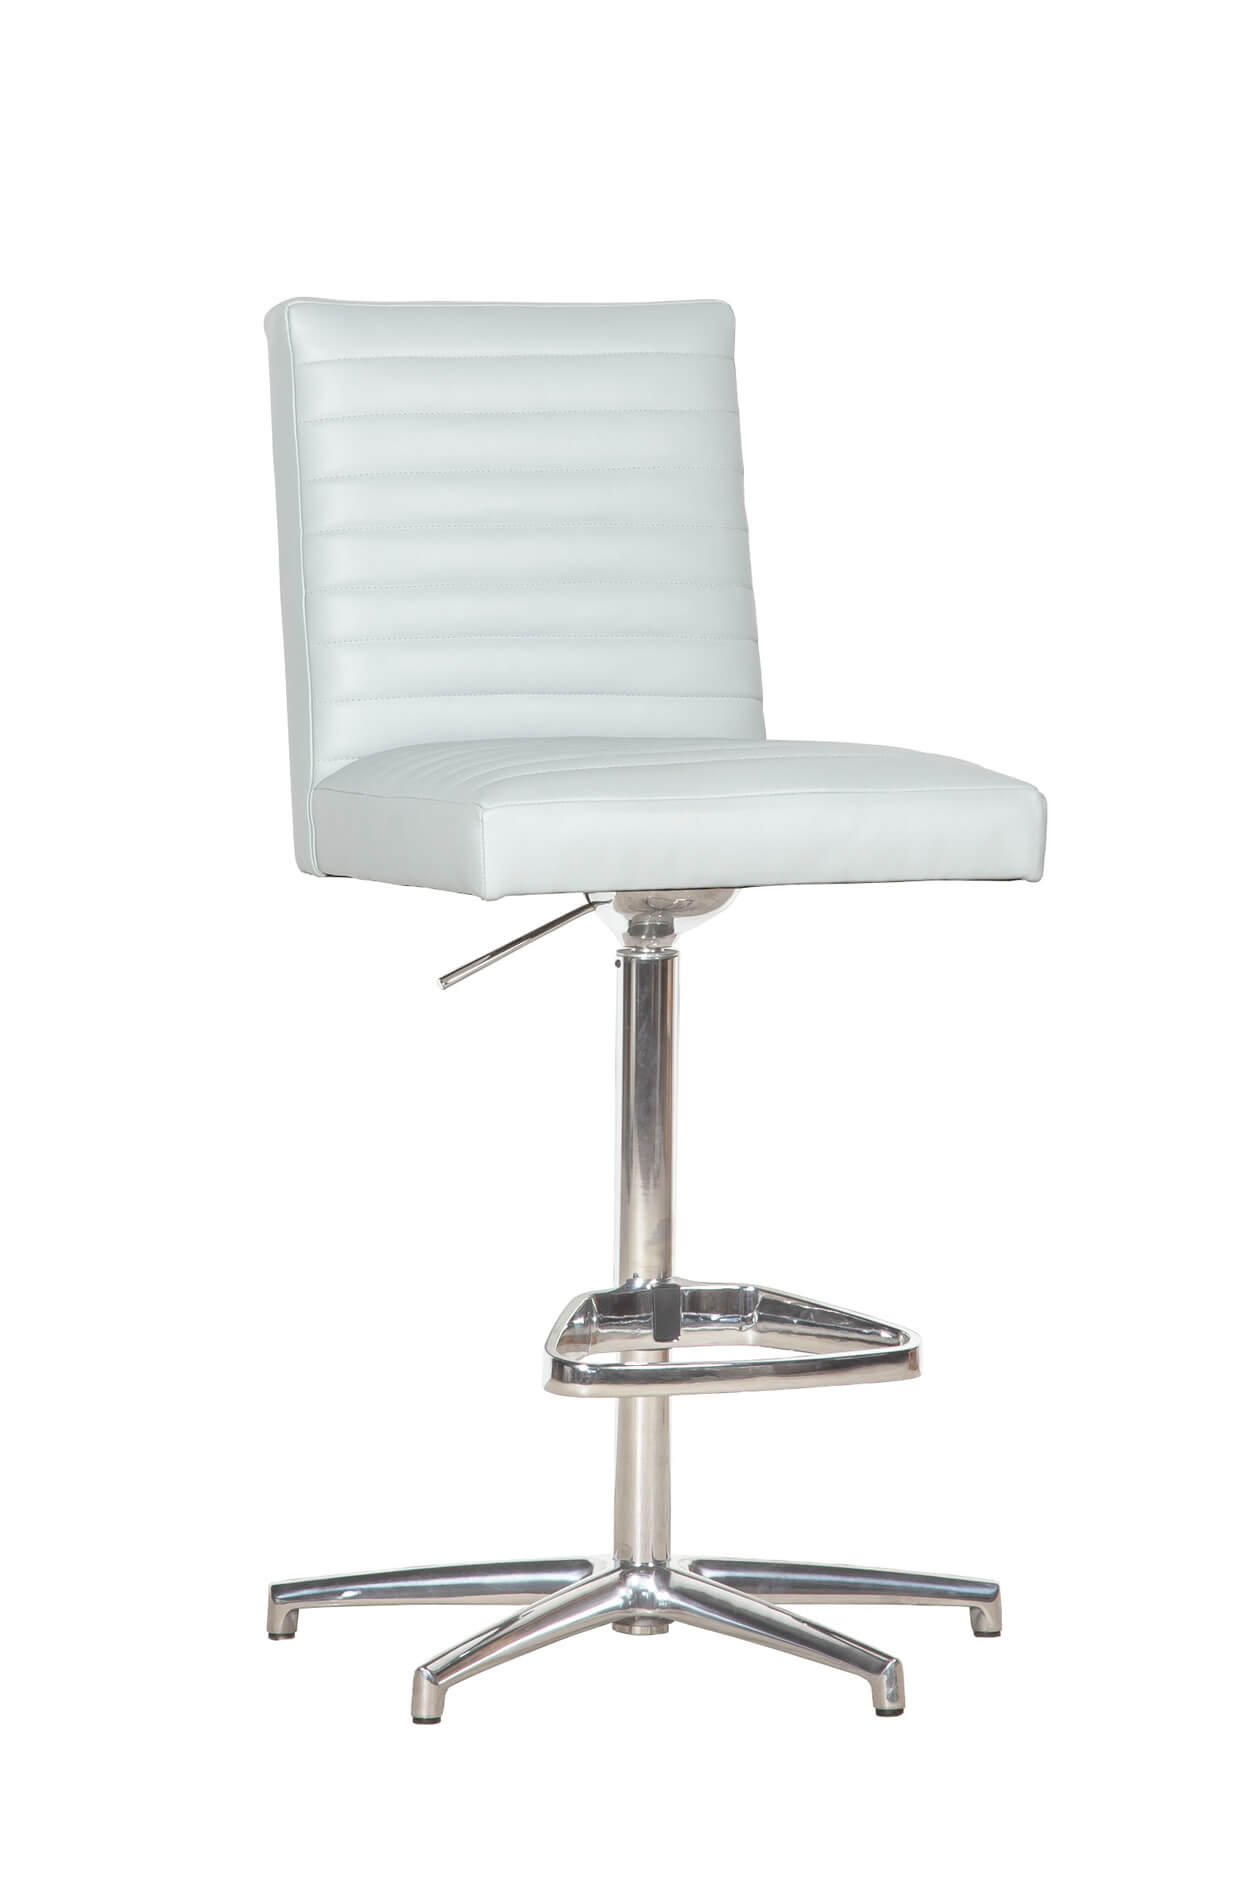 Fairfield's Uma II Adjustable Bar Stool Channel Upholstered Back in Nickel Metal Finish